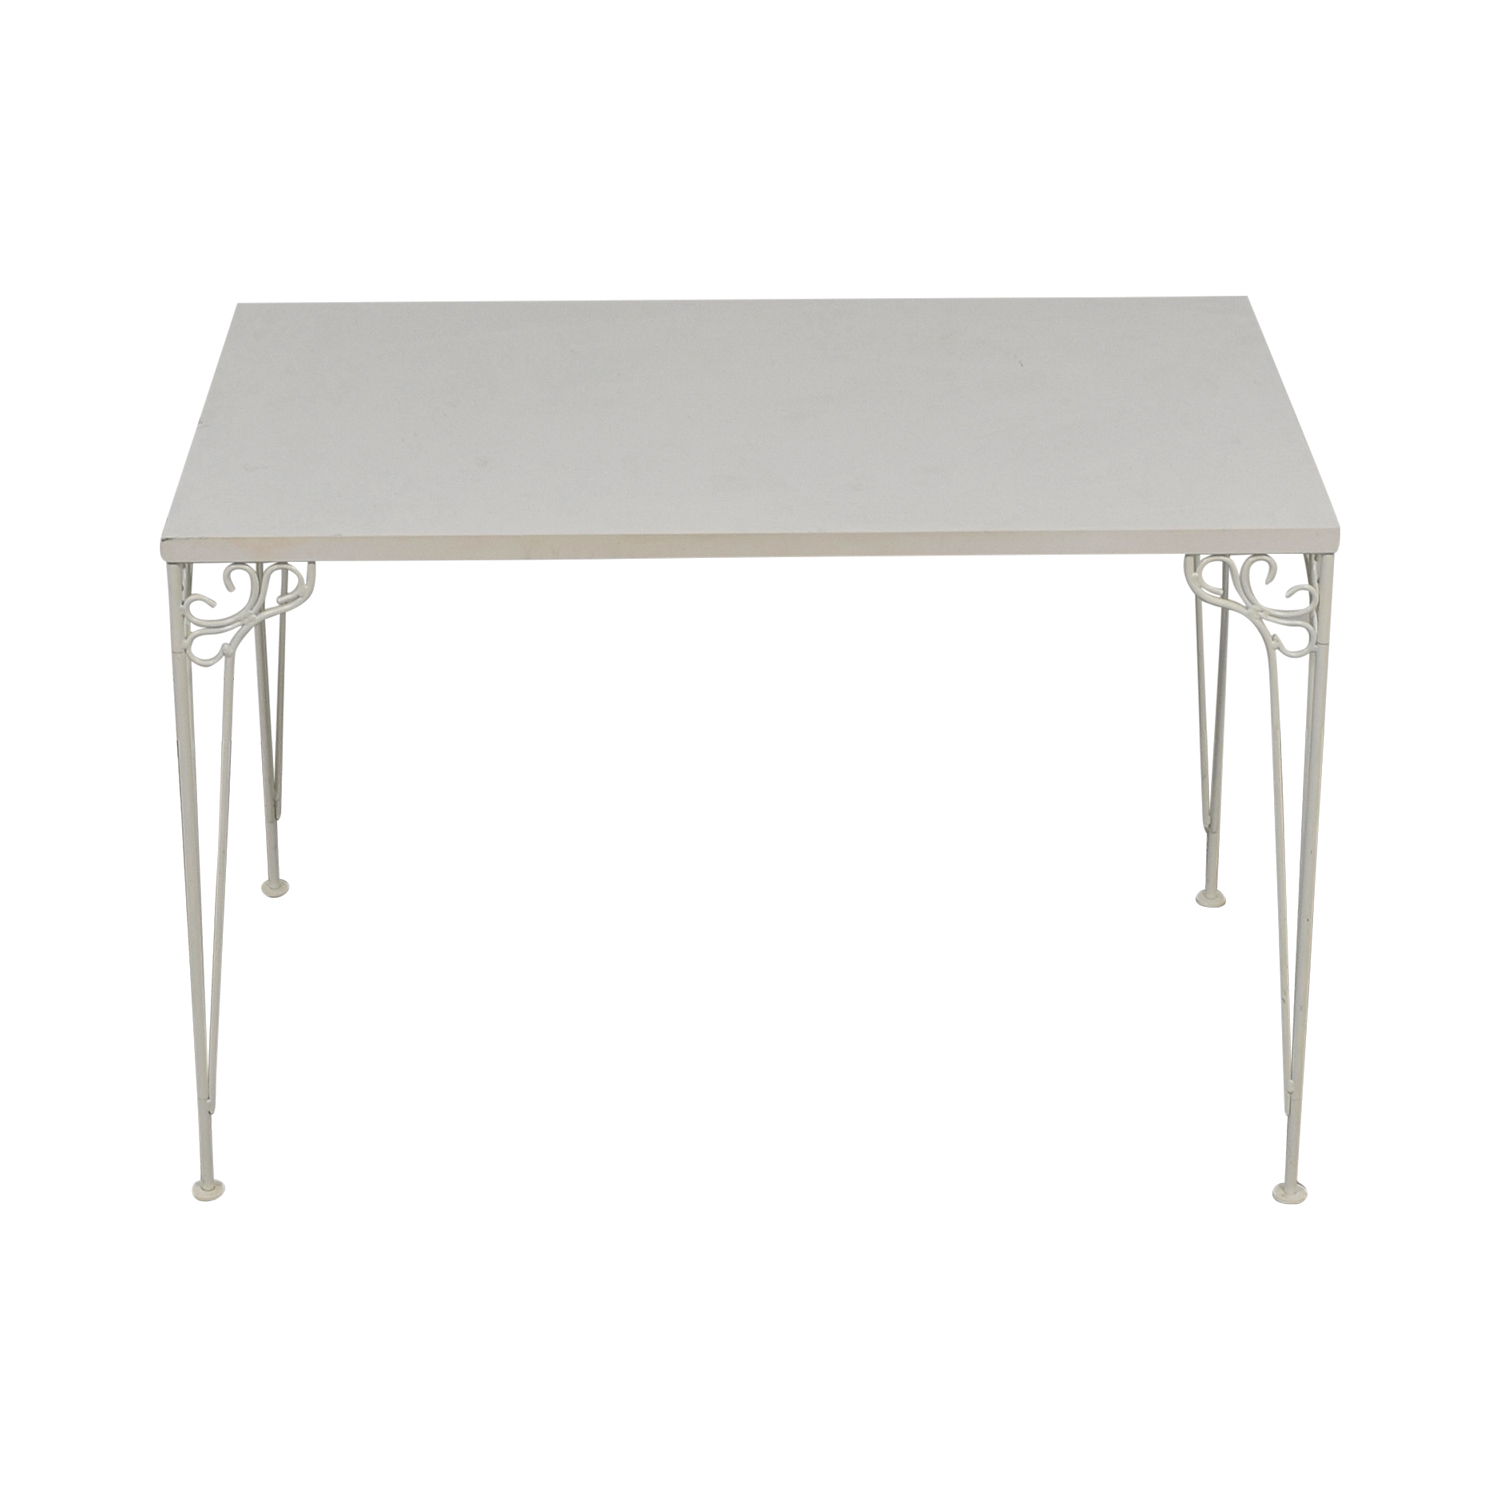 ... Shop IKEA White Filigree Legged Desk IKEA Home Office Desks ...